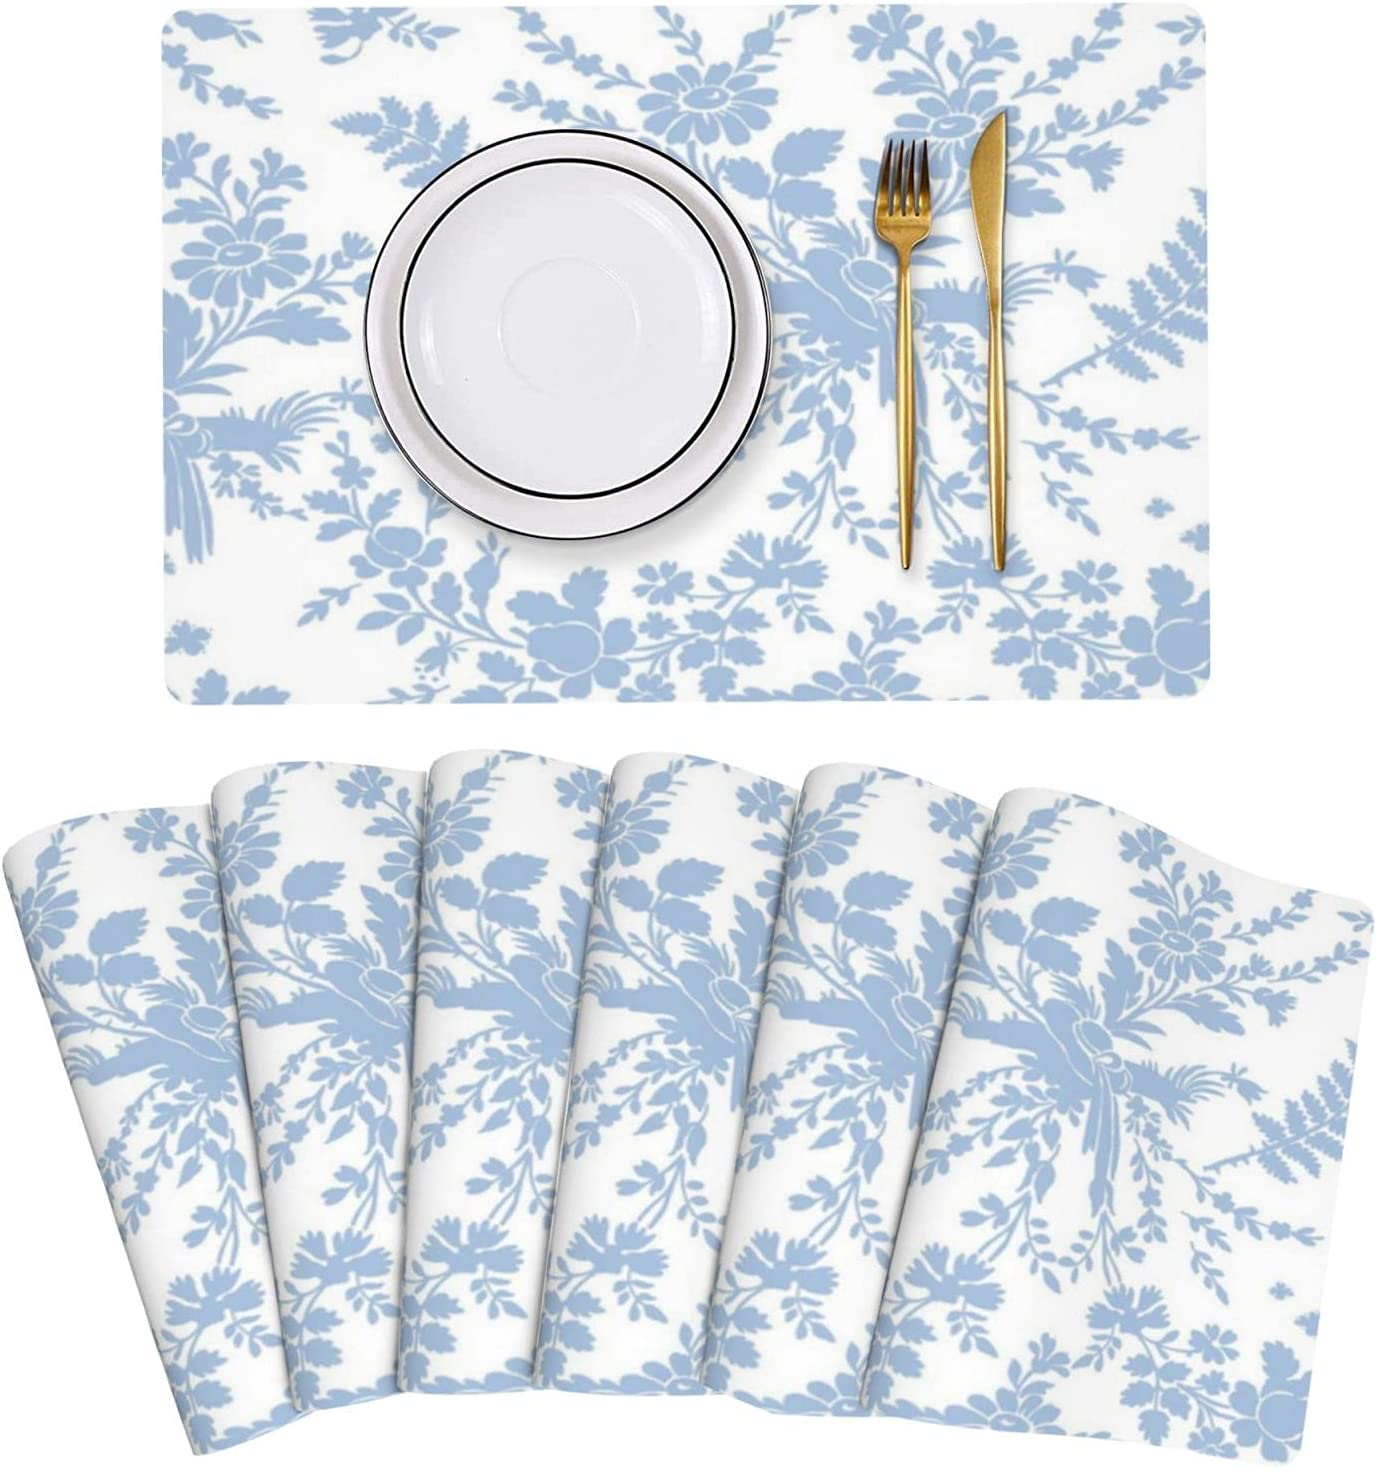 Paryma Blueberry Leather Placemats Set 6 Stain of Non- Resistant Gorgeous Product